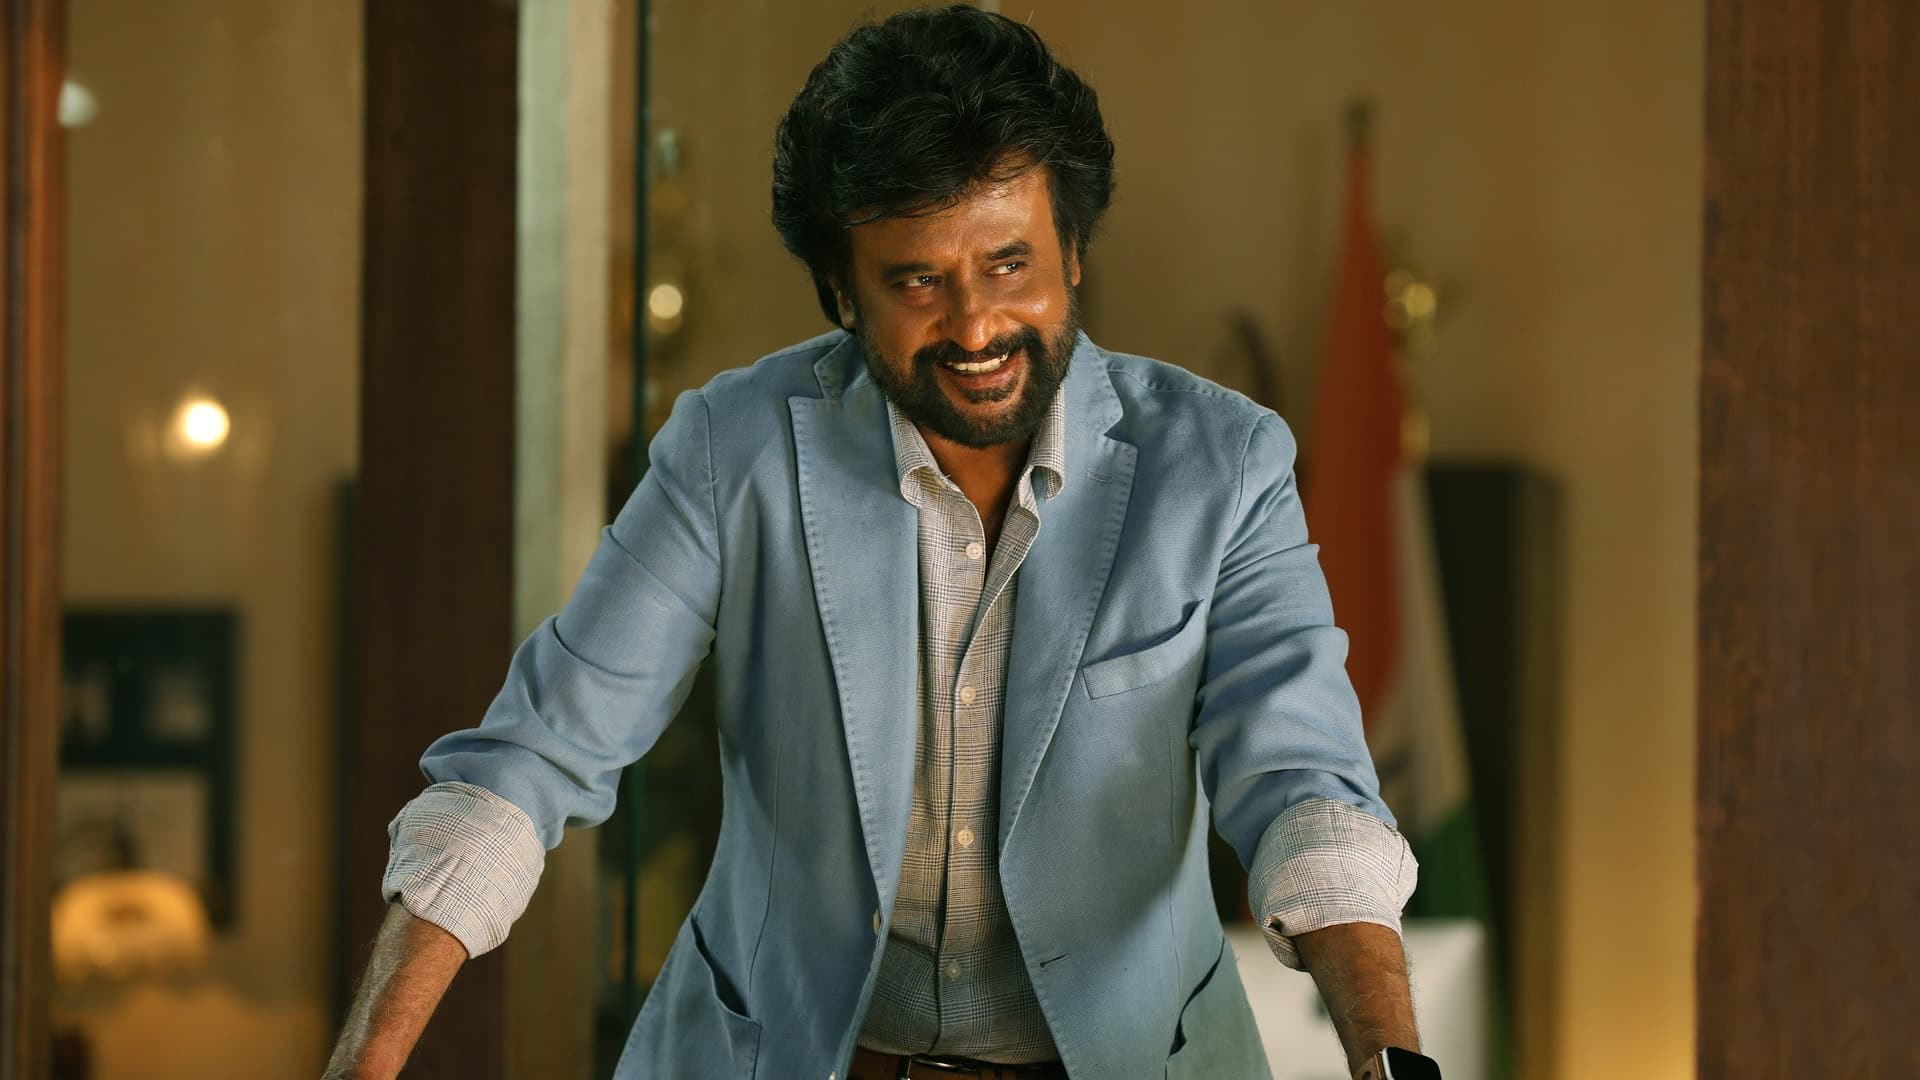 Rajinikanth to be bestowed with Dada Saheb Phalke award